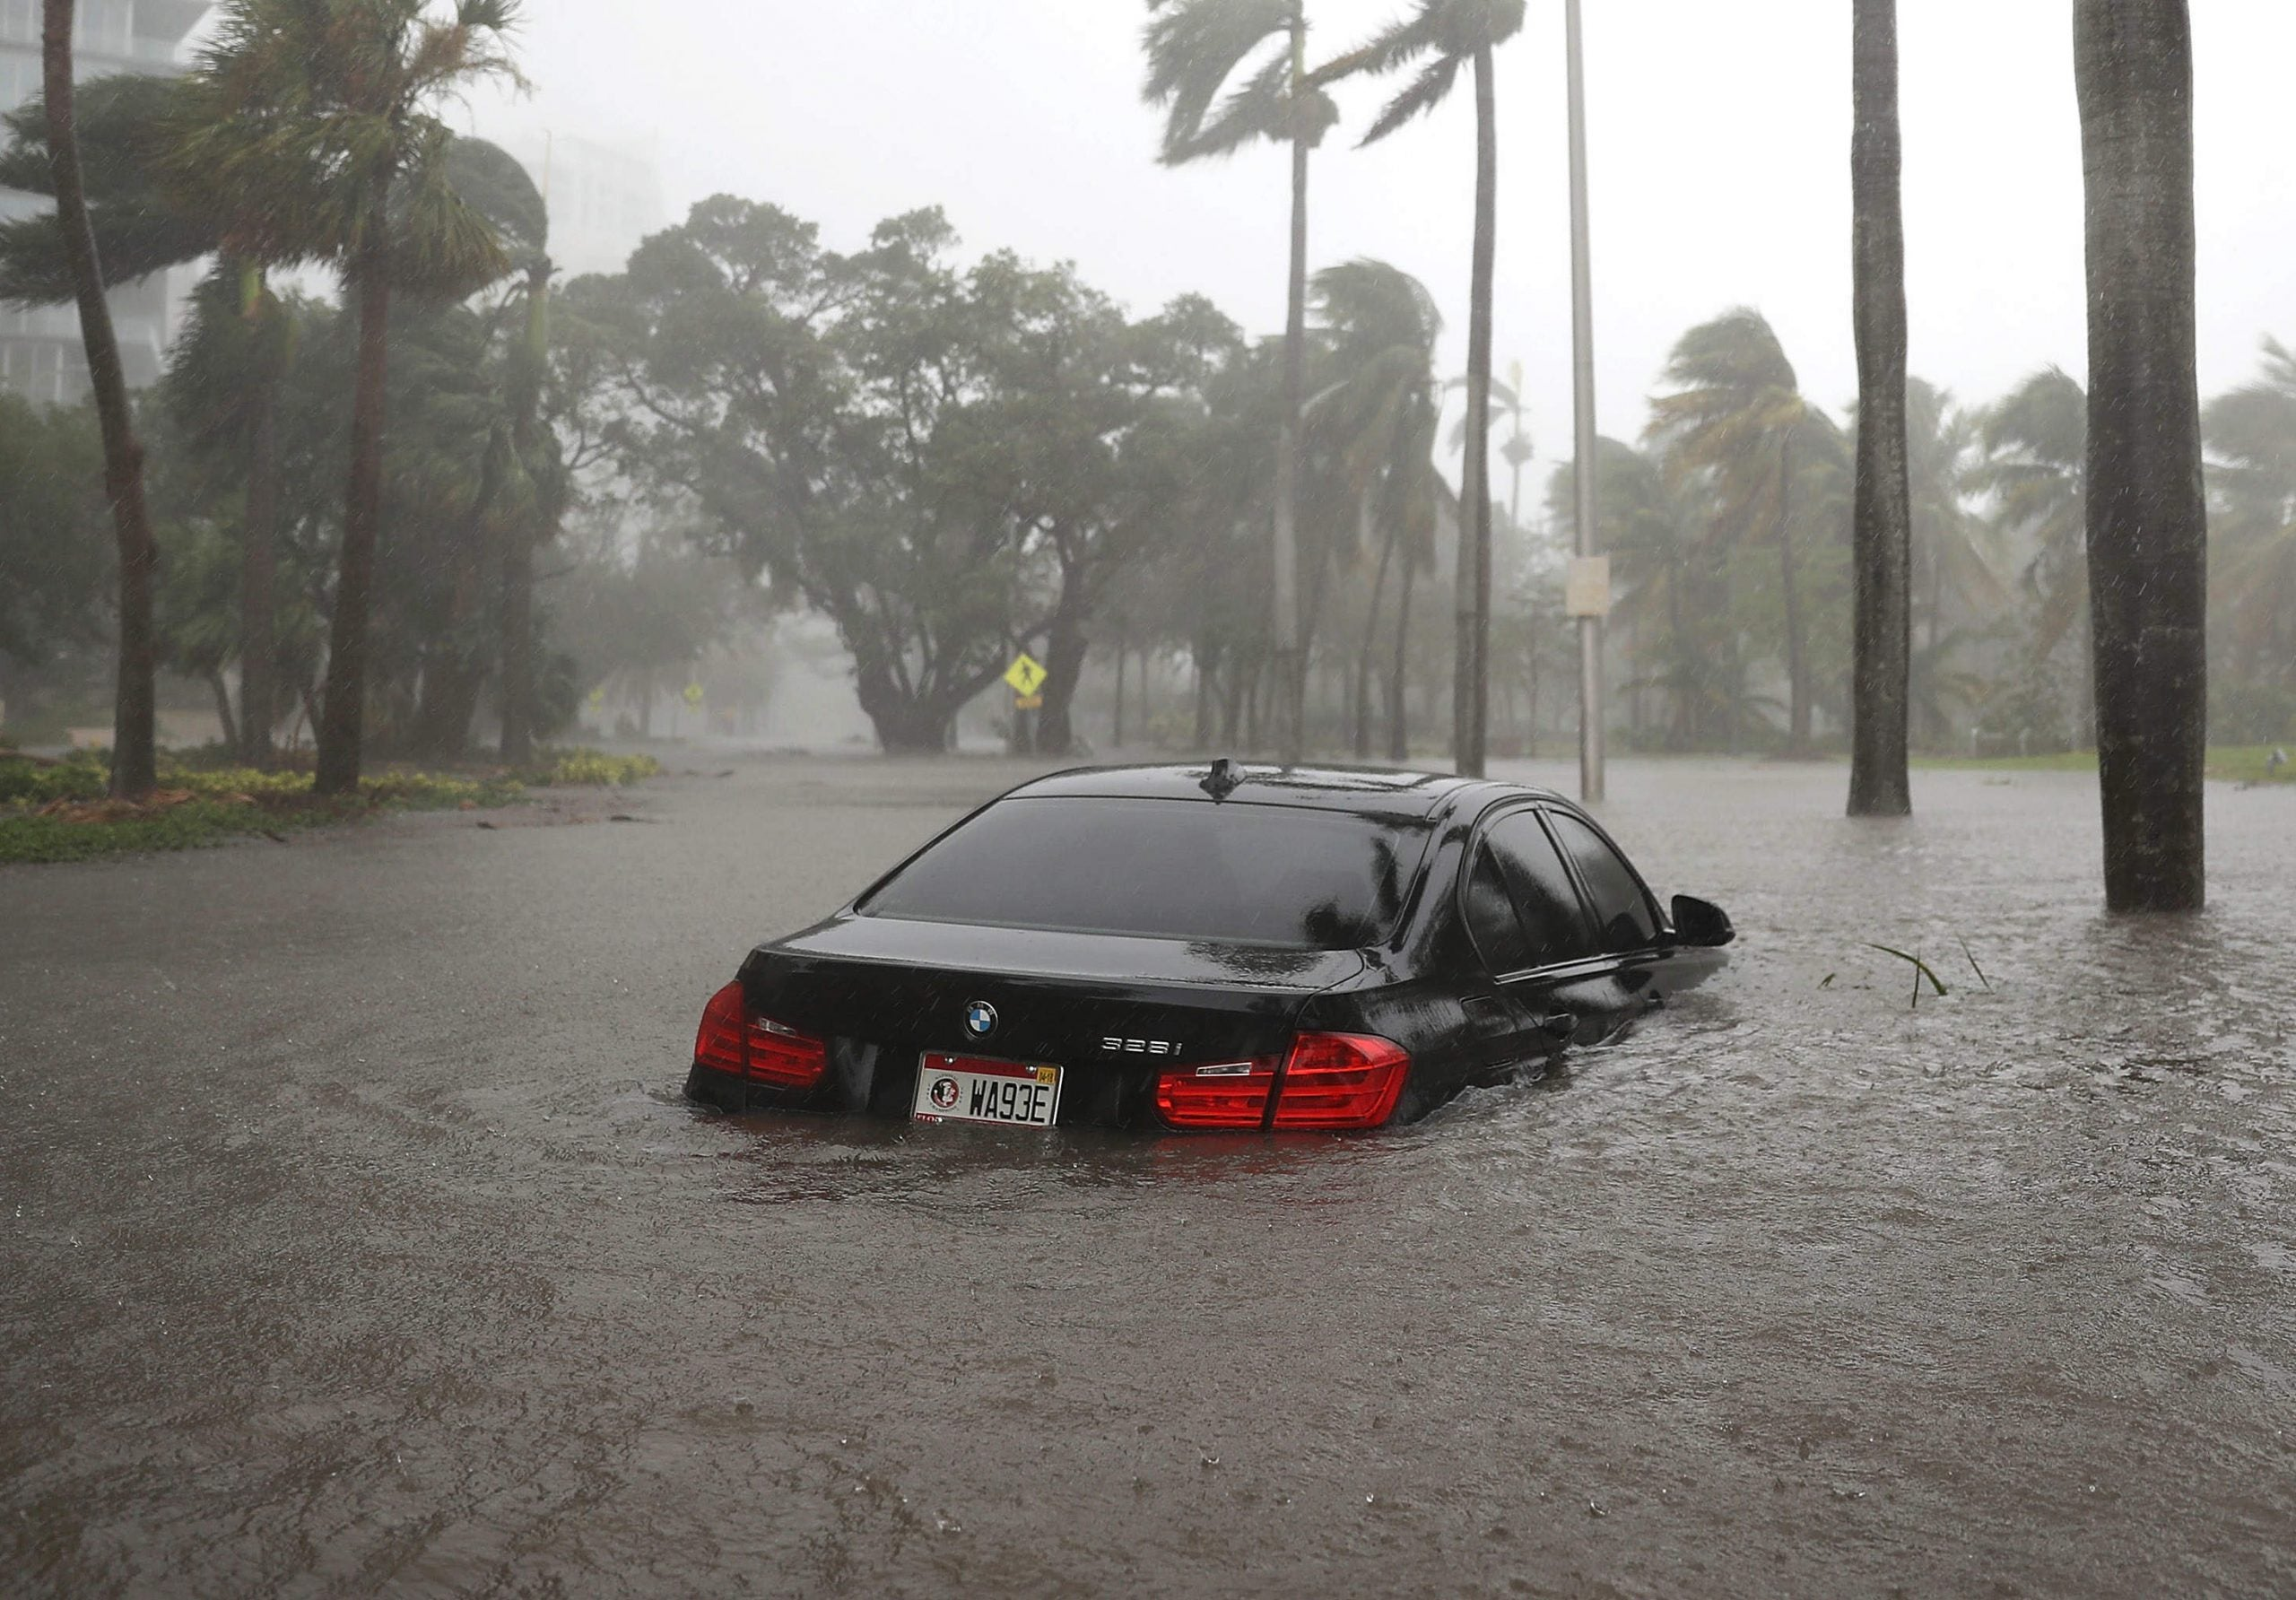 Hurricane Irma and why the only thing worse than climate change denial is acceptance